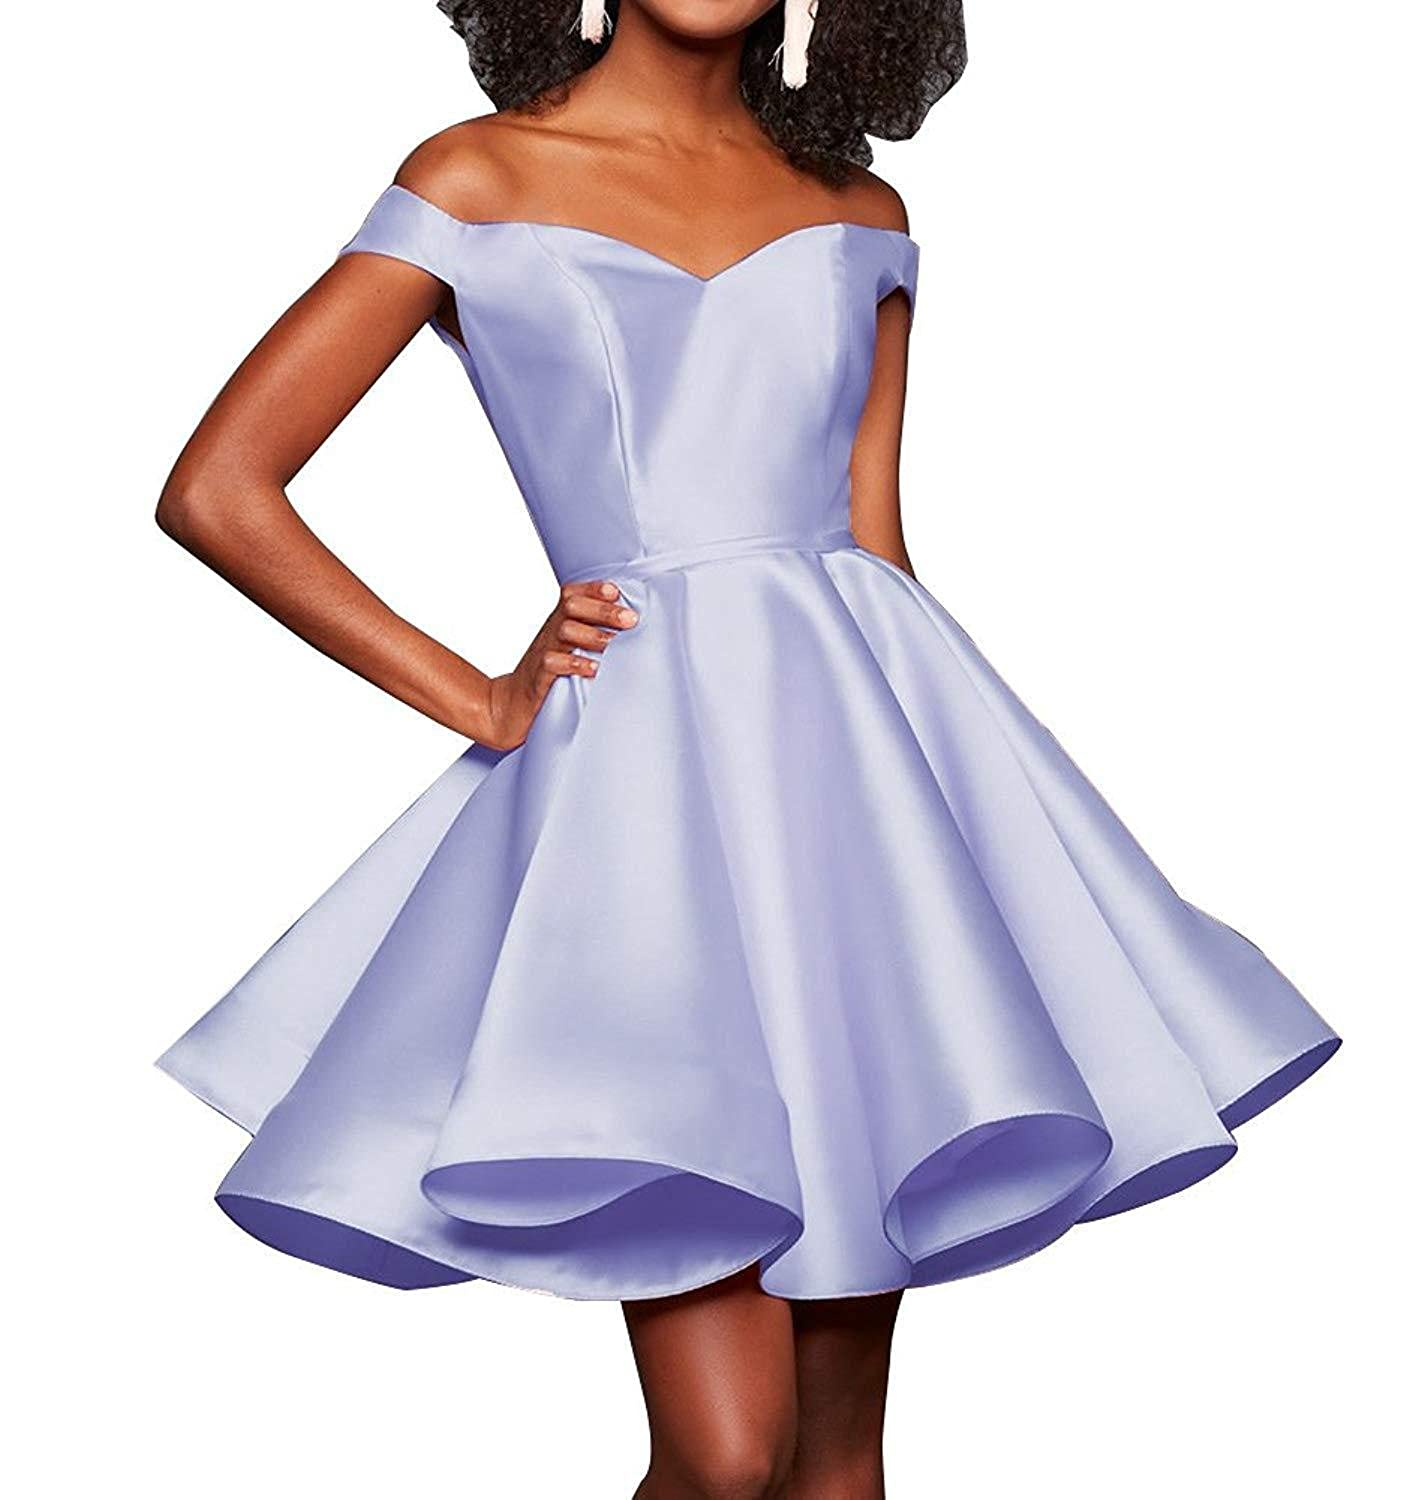 Lavendar TTdamai Off The Shoulder Satin Homecoming Dress Short Prom Party Gowns